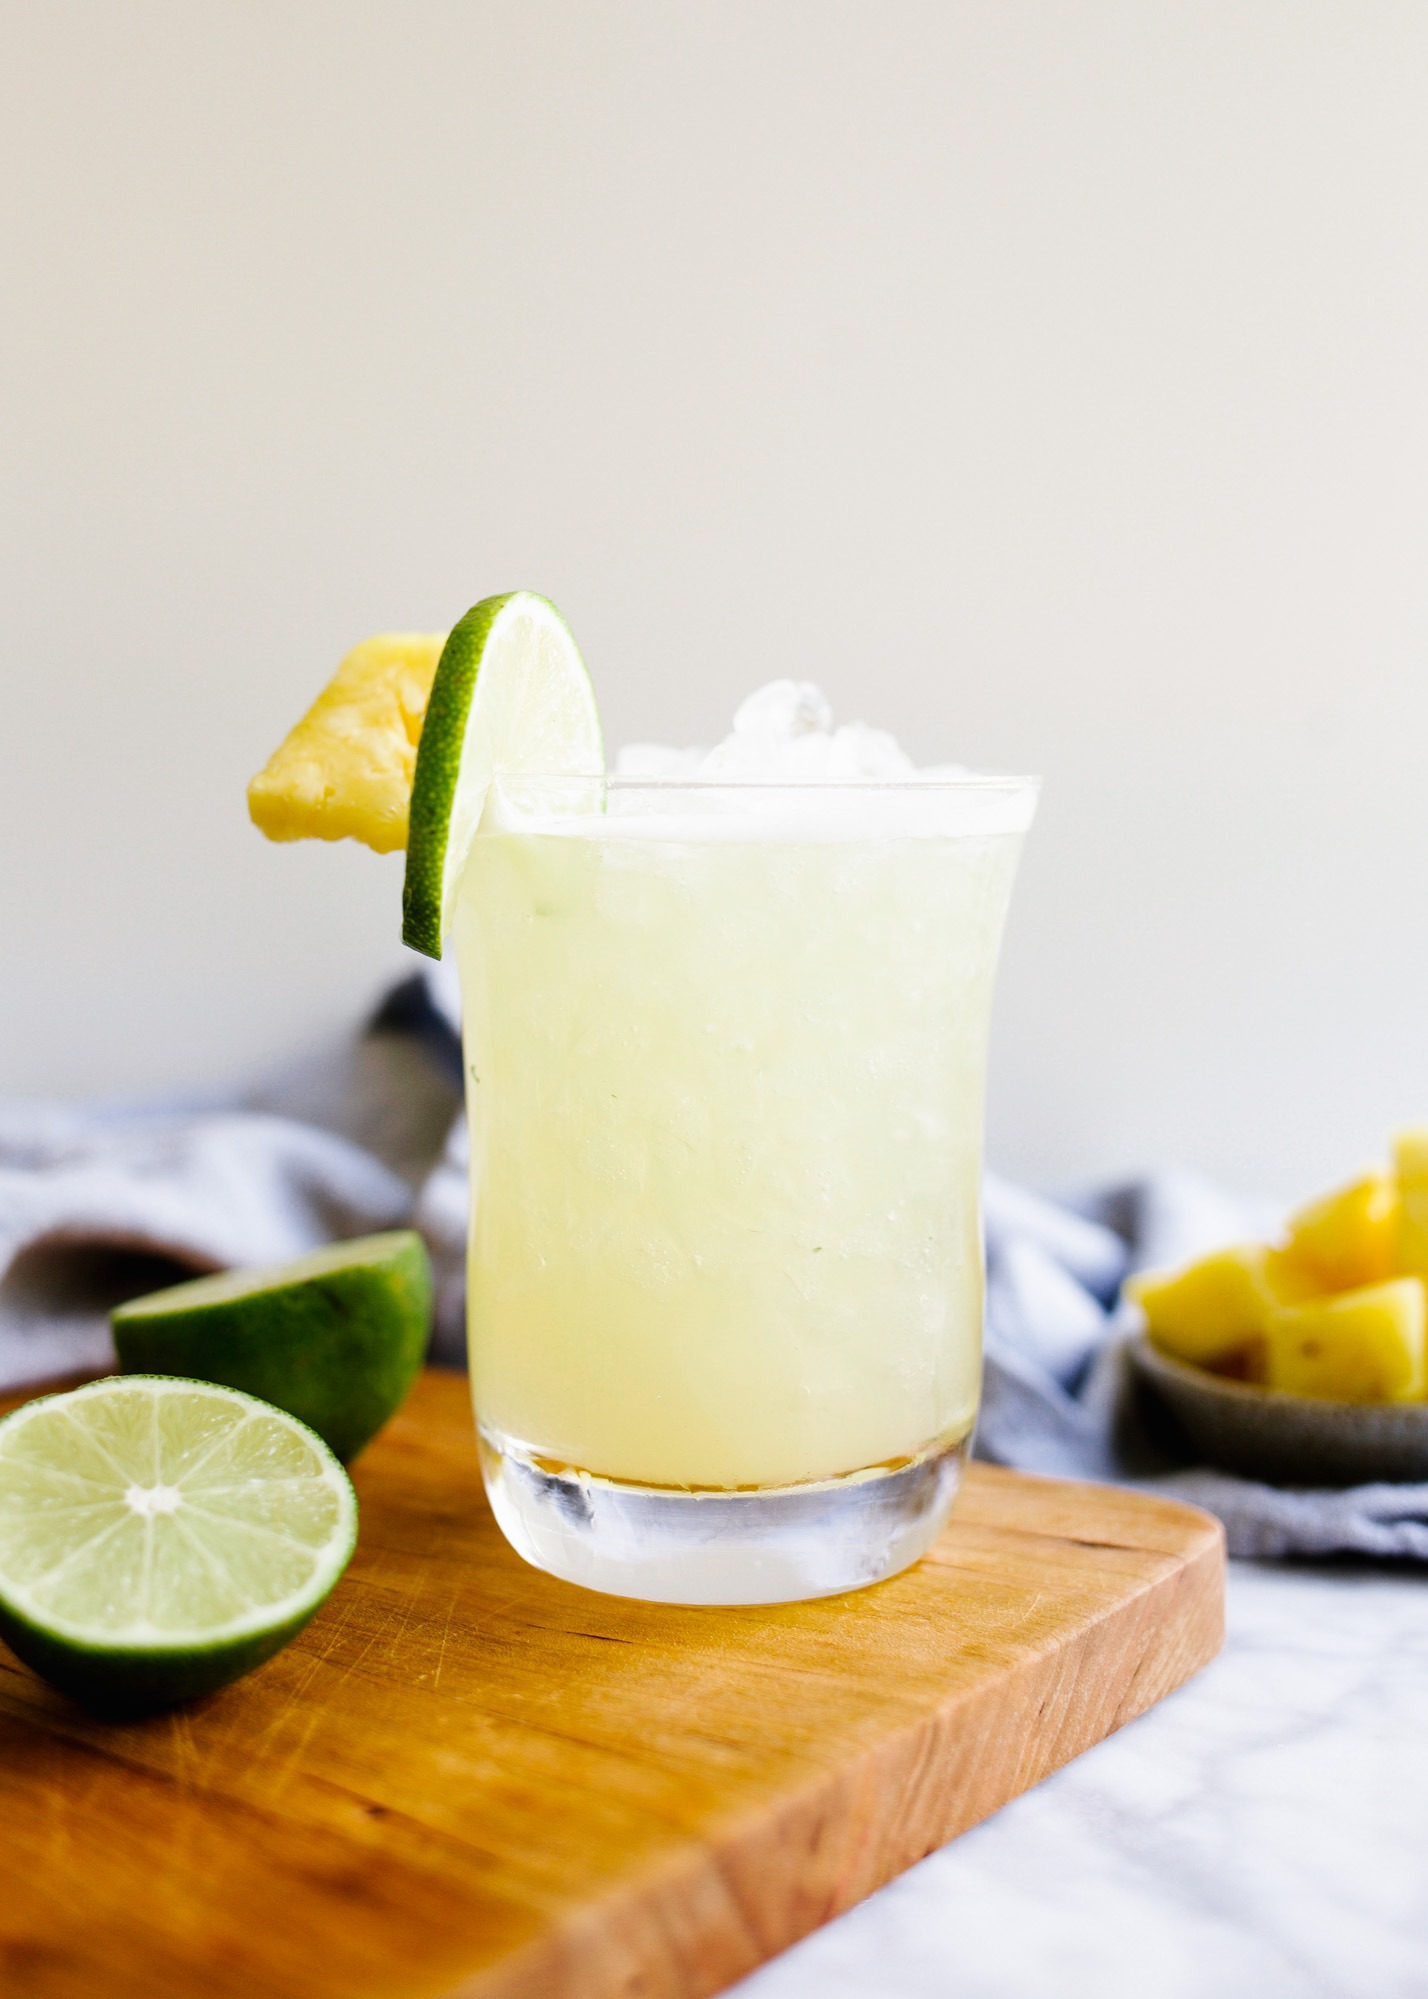 Pineapple Ginger Rum Punch by Wood and Spoon. Beachy flavors of pineapple, rum, lime, and ginger combine over ice to make a sweet and boozy beach day drink perfect for your summer days. Serve with a dollop of whipped cream and make a big batch to serve a crowd. Learn how to make this poolside cocktail on thewoodandspoon.com